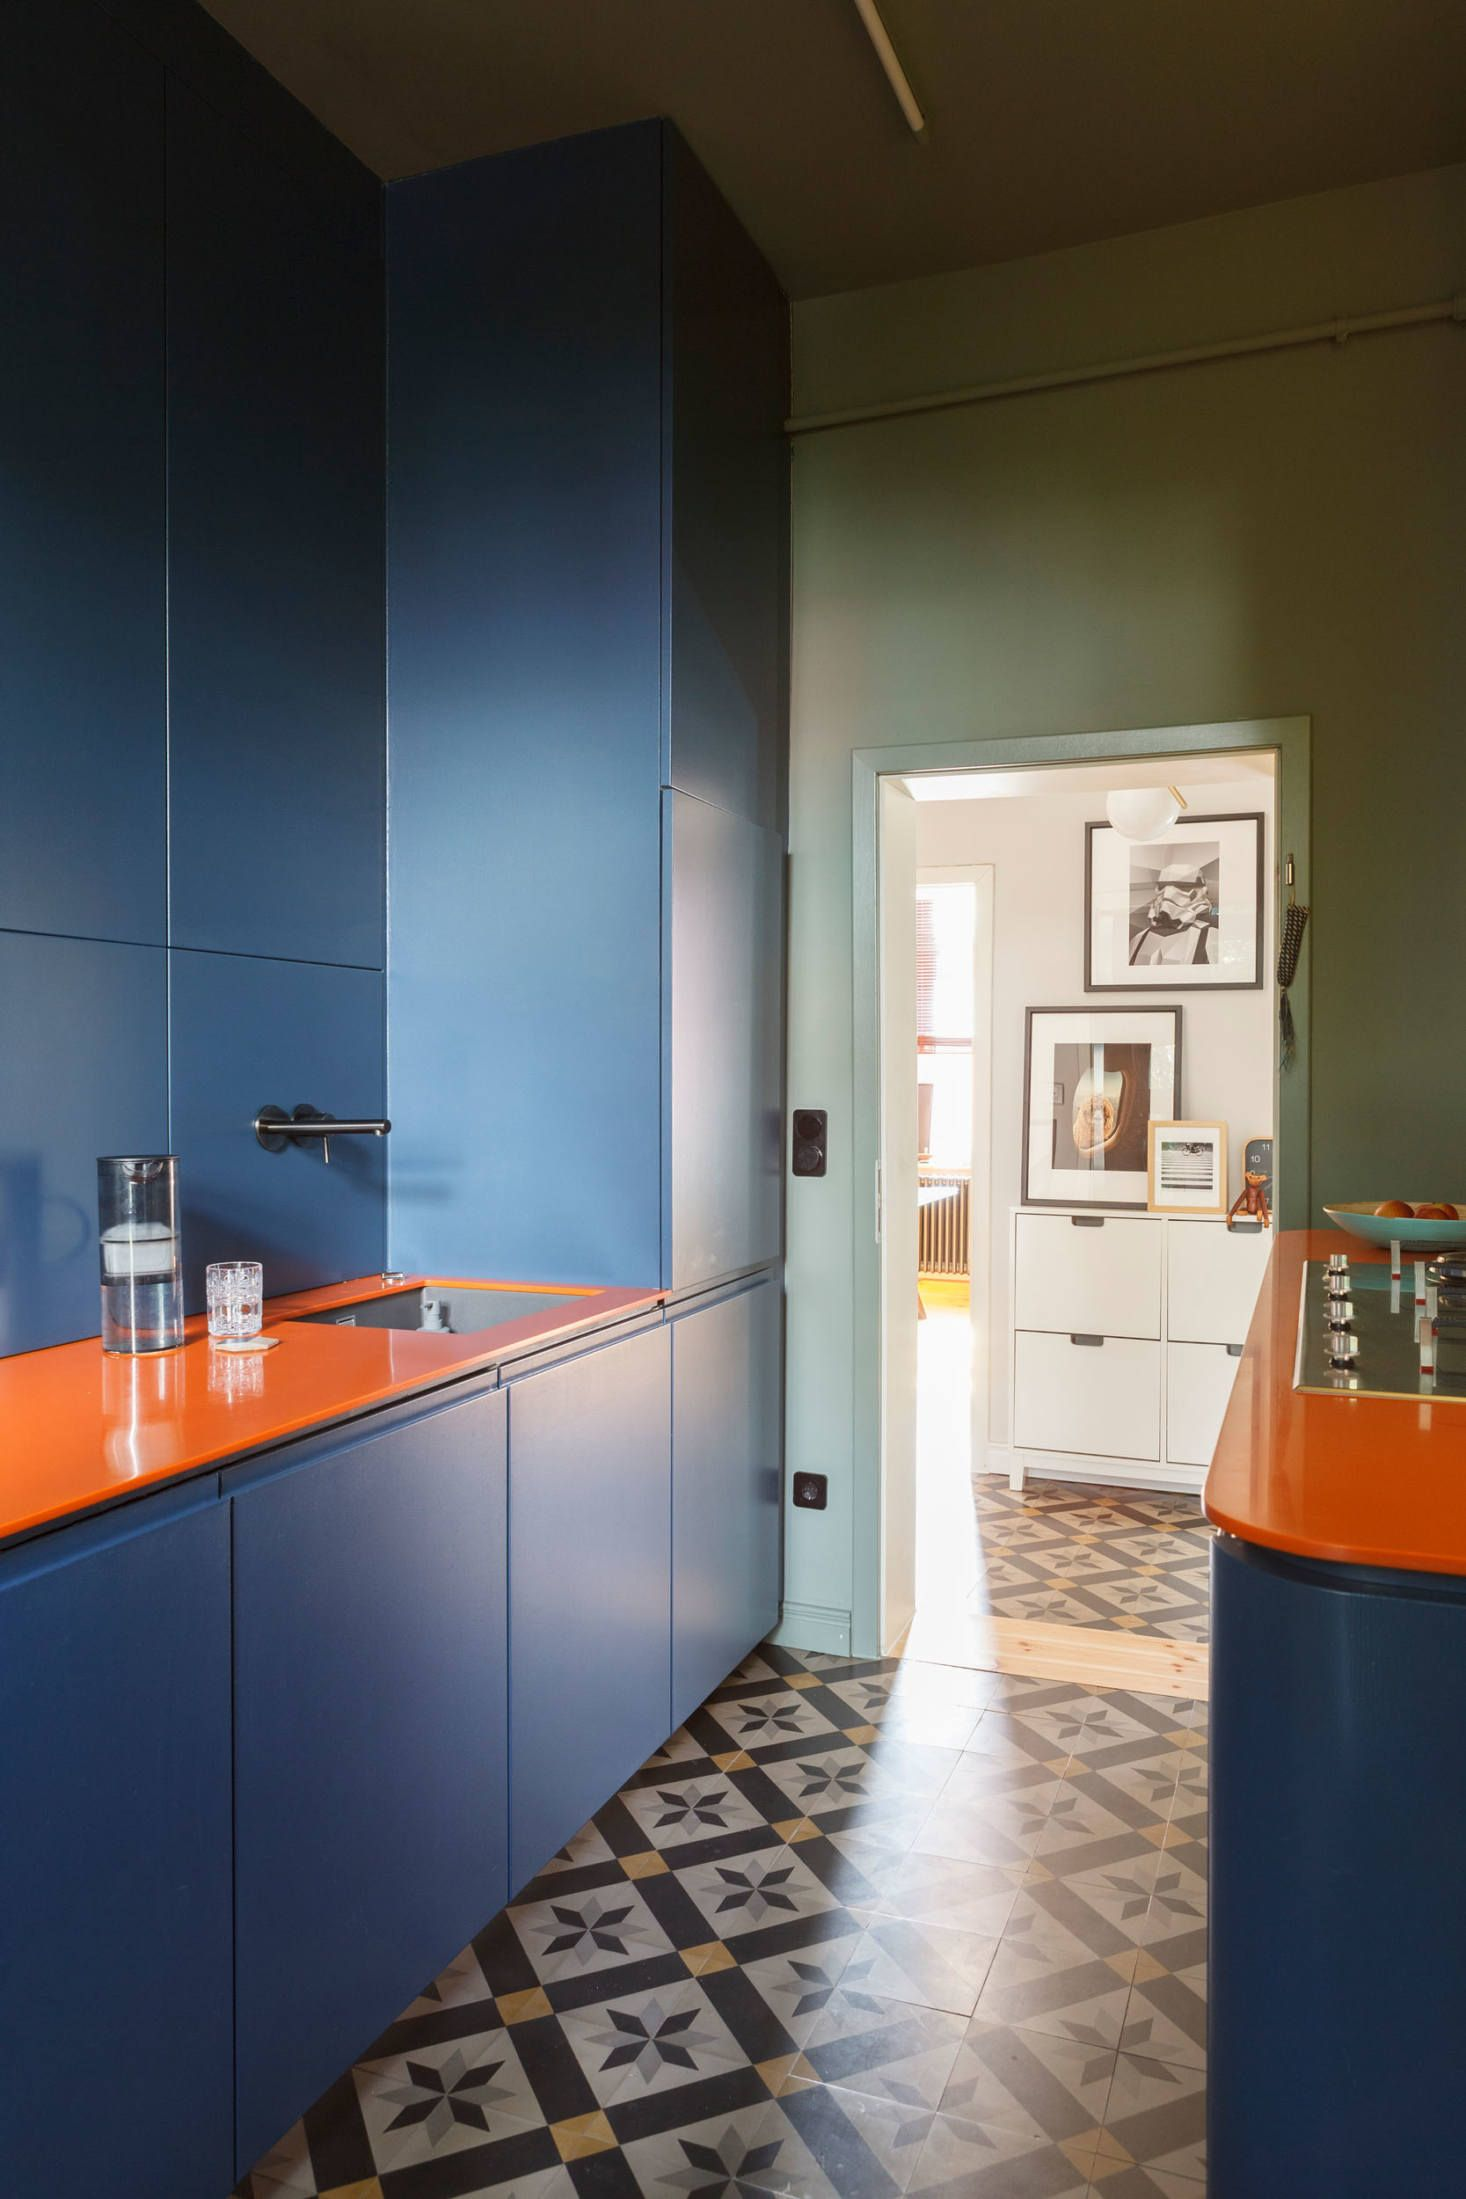 Trending on Remodelista: 5 New Color Palettes to Steal for Spring